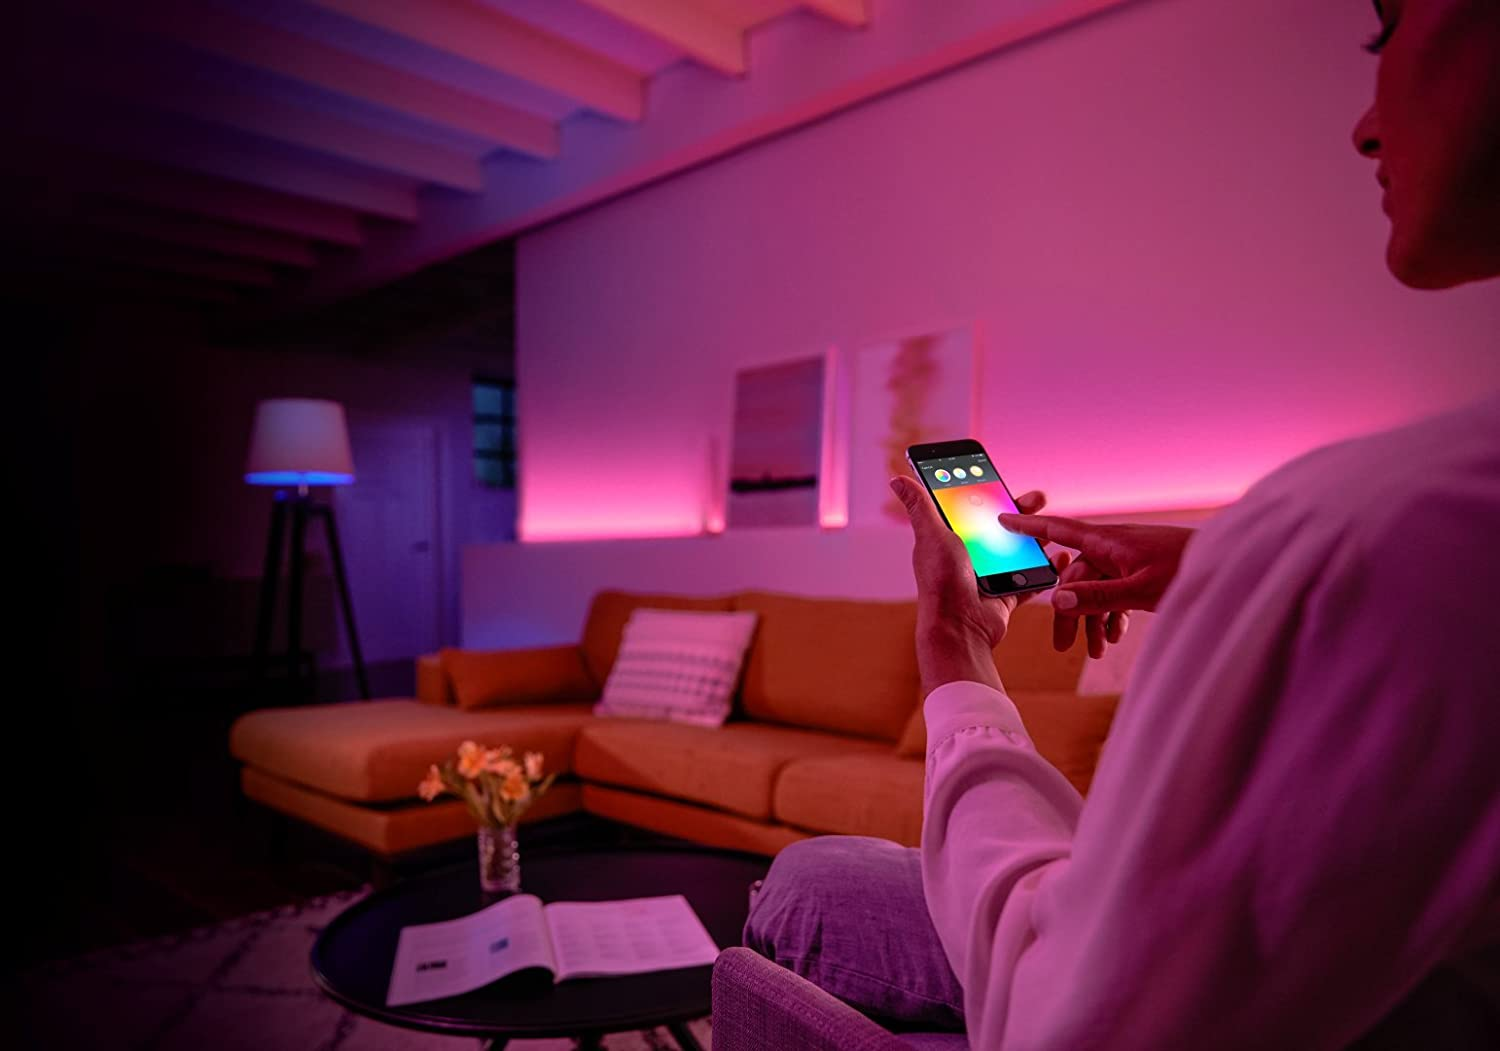 Philips Lighting White and Color Ambiance Starter Kit, un prodotto per la domotica e smart home